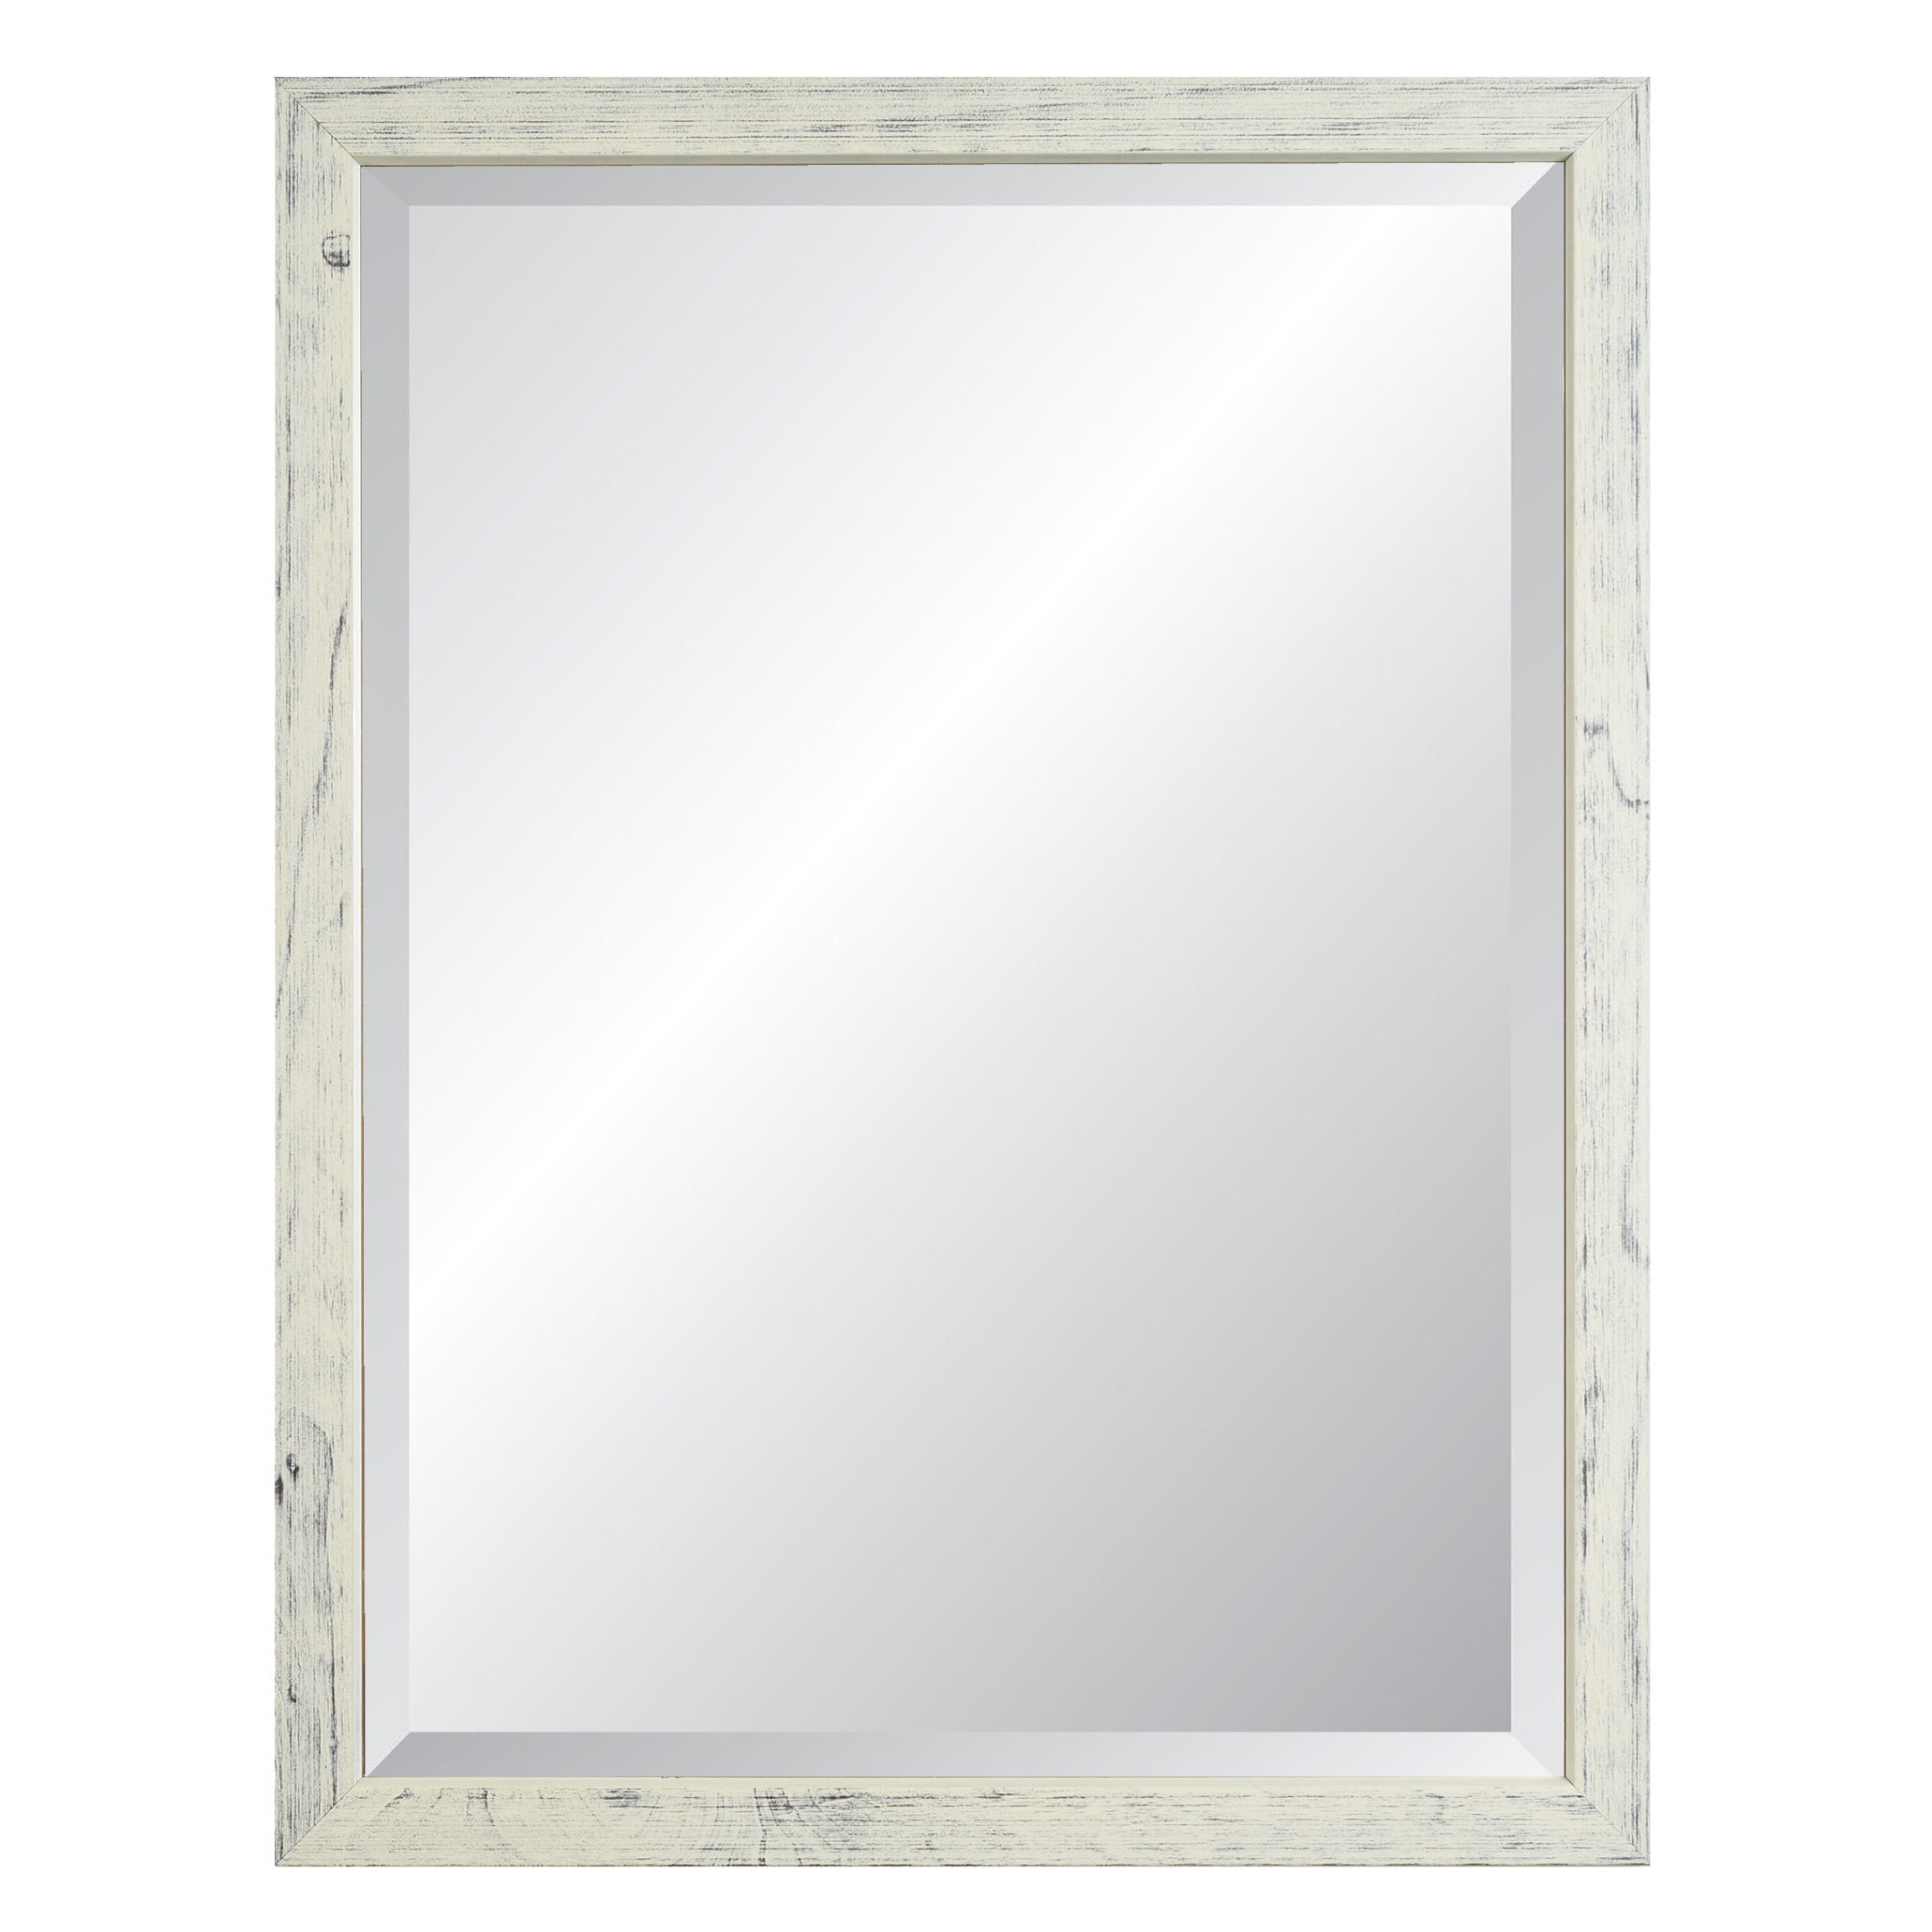 Nantucket Weathered White Framed Wall Mirror